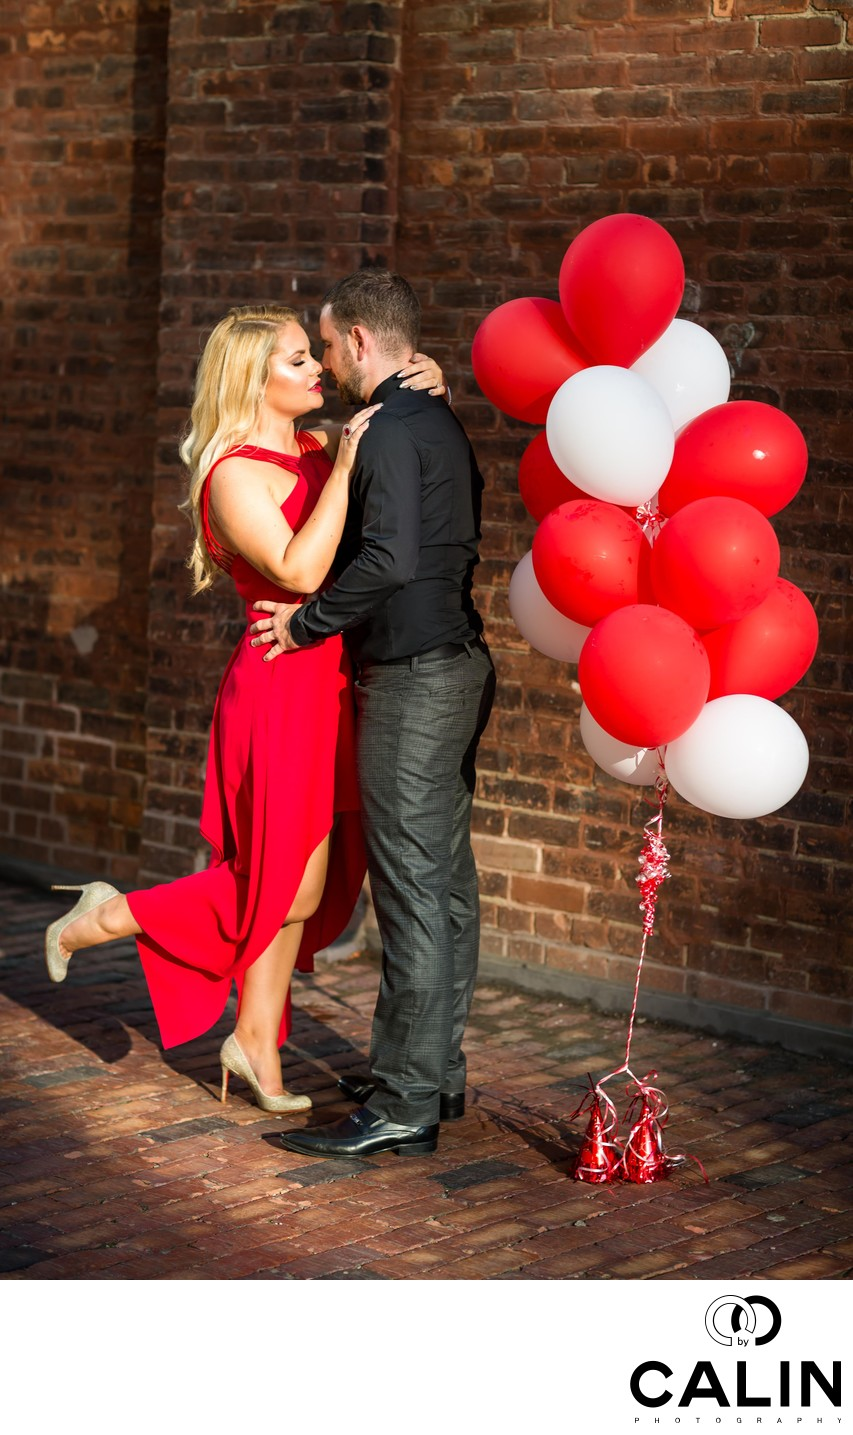 Engagement Photos With Balloons